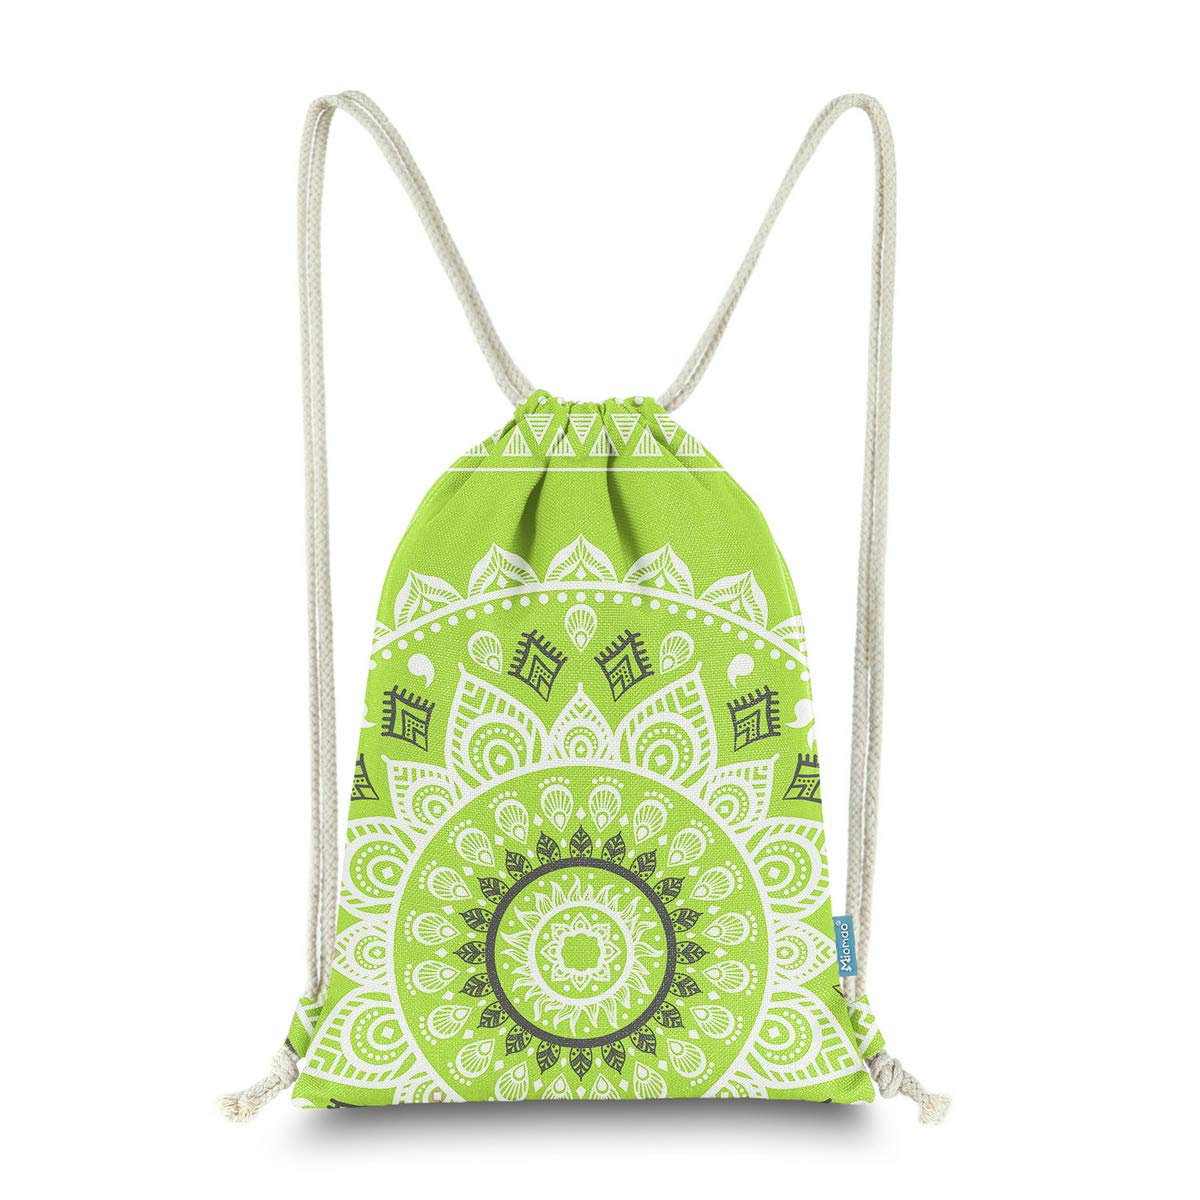 Miomao Drawstring Backpack Gym Sack Pack Mandala Style String Bag With Pocket Canvas Sinch Sack Sport Cinch Pack Christmas Gift Bags Beach Rucksack 13 X 18 Inches Fluorescent Green